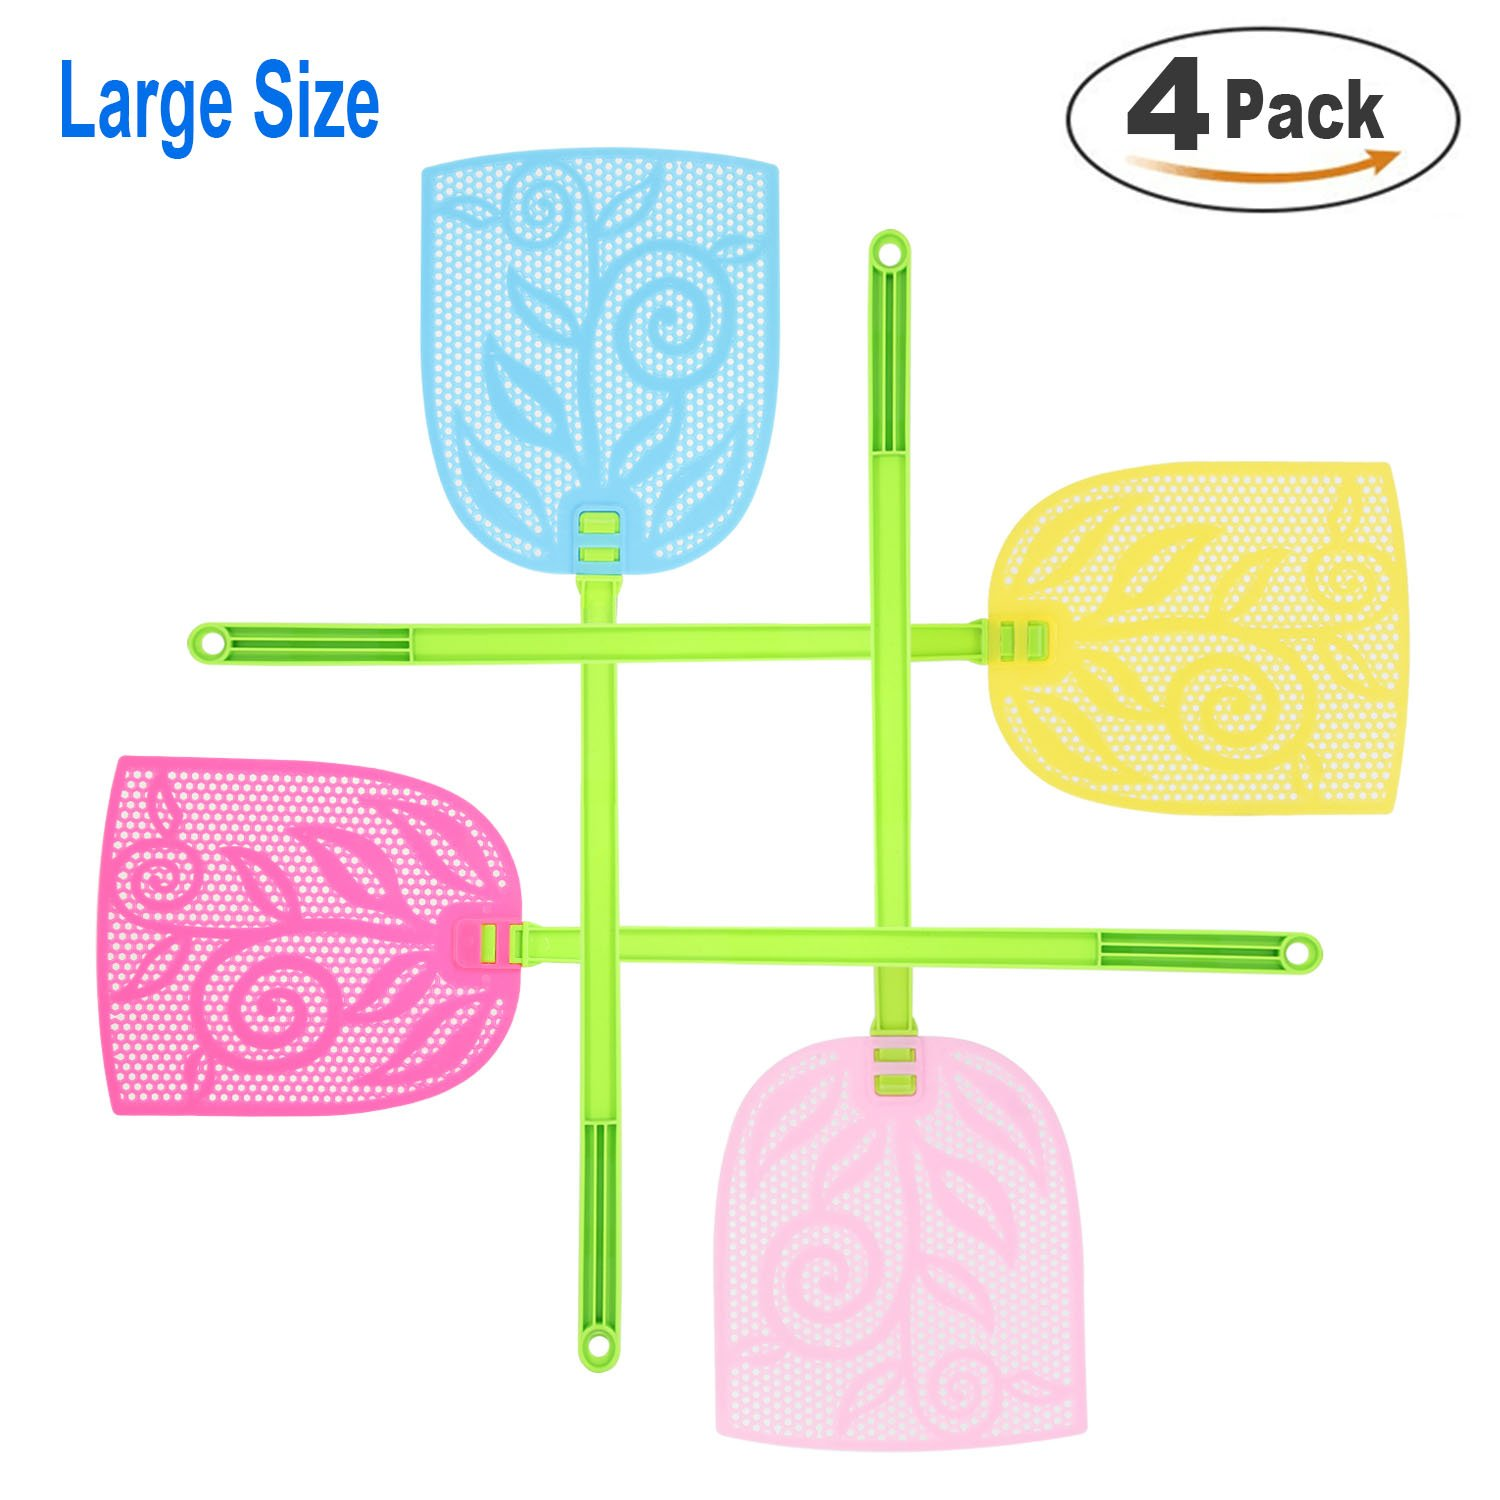 Fly Swatter 23.6 inch Extra Long Handle Durable Soft TPU+Plastic Pest Control,6.3 inch by 7.5 inch Striking area, 4 Sweet Colors 4 Pack (4)